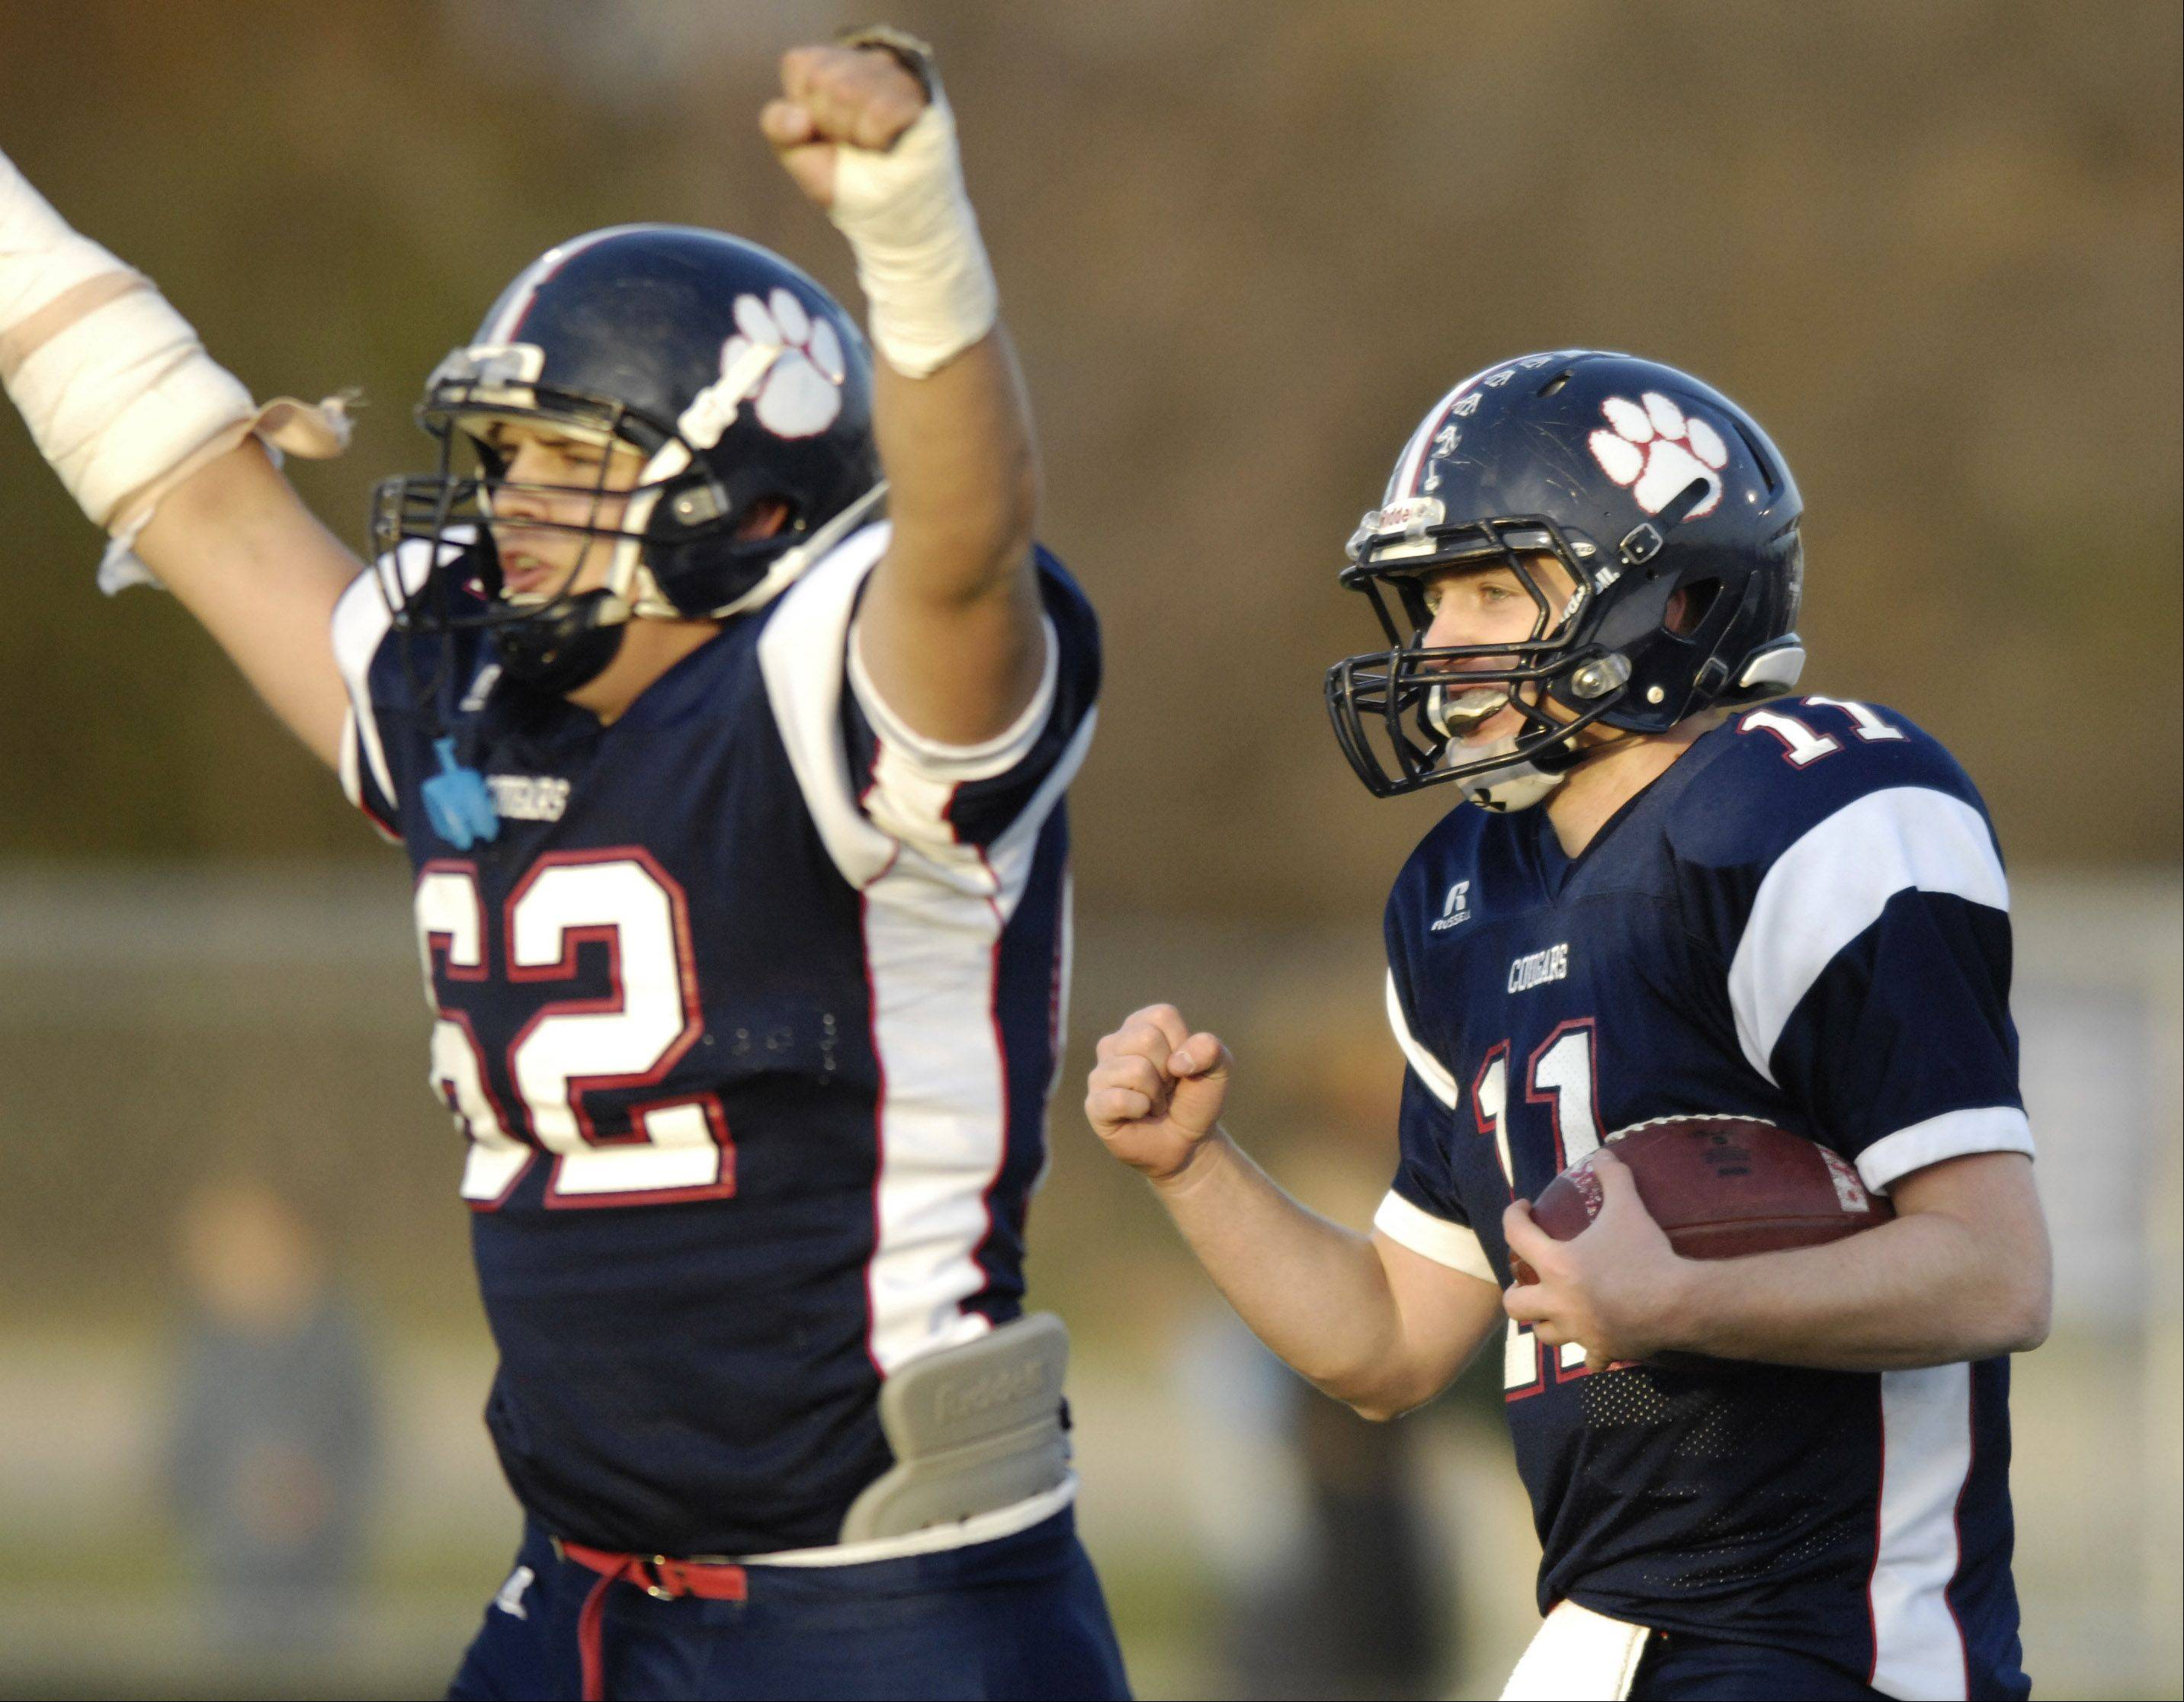 Conant's Alec Field, left, and Danny Modelski celebrate during the Cougars' 14-0 win over New Trier in the Class 8A playoffs on Saturday.